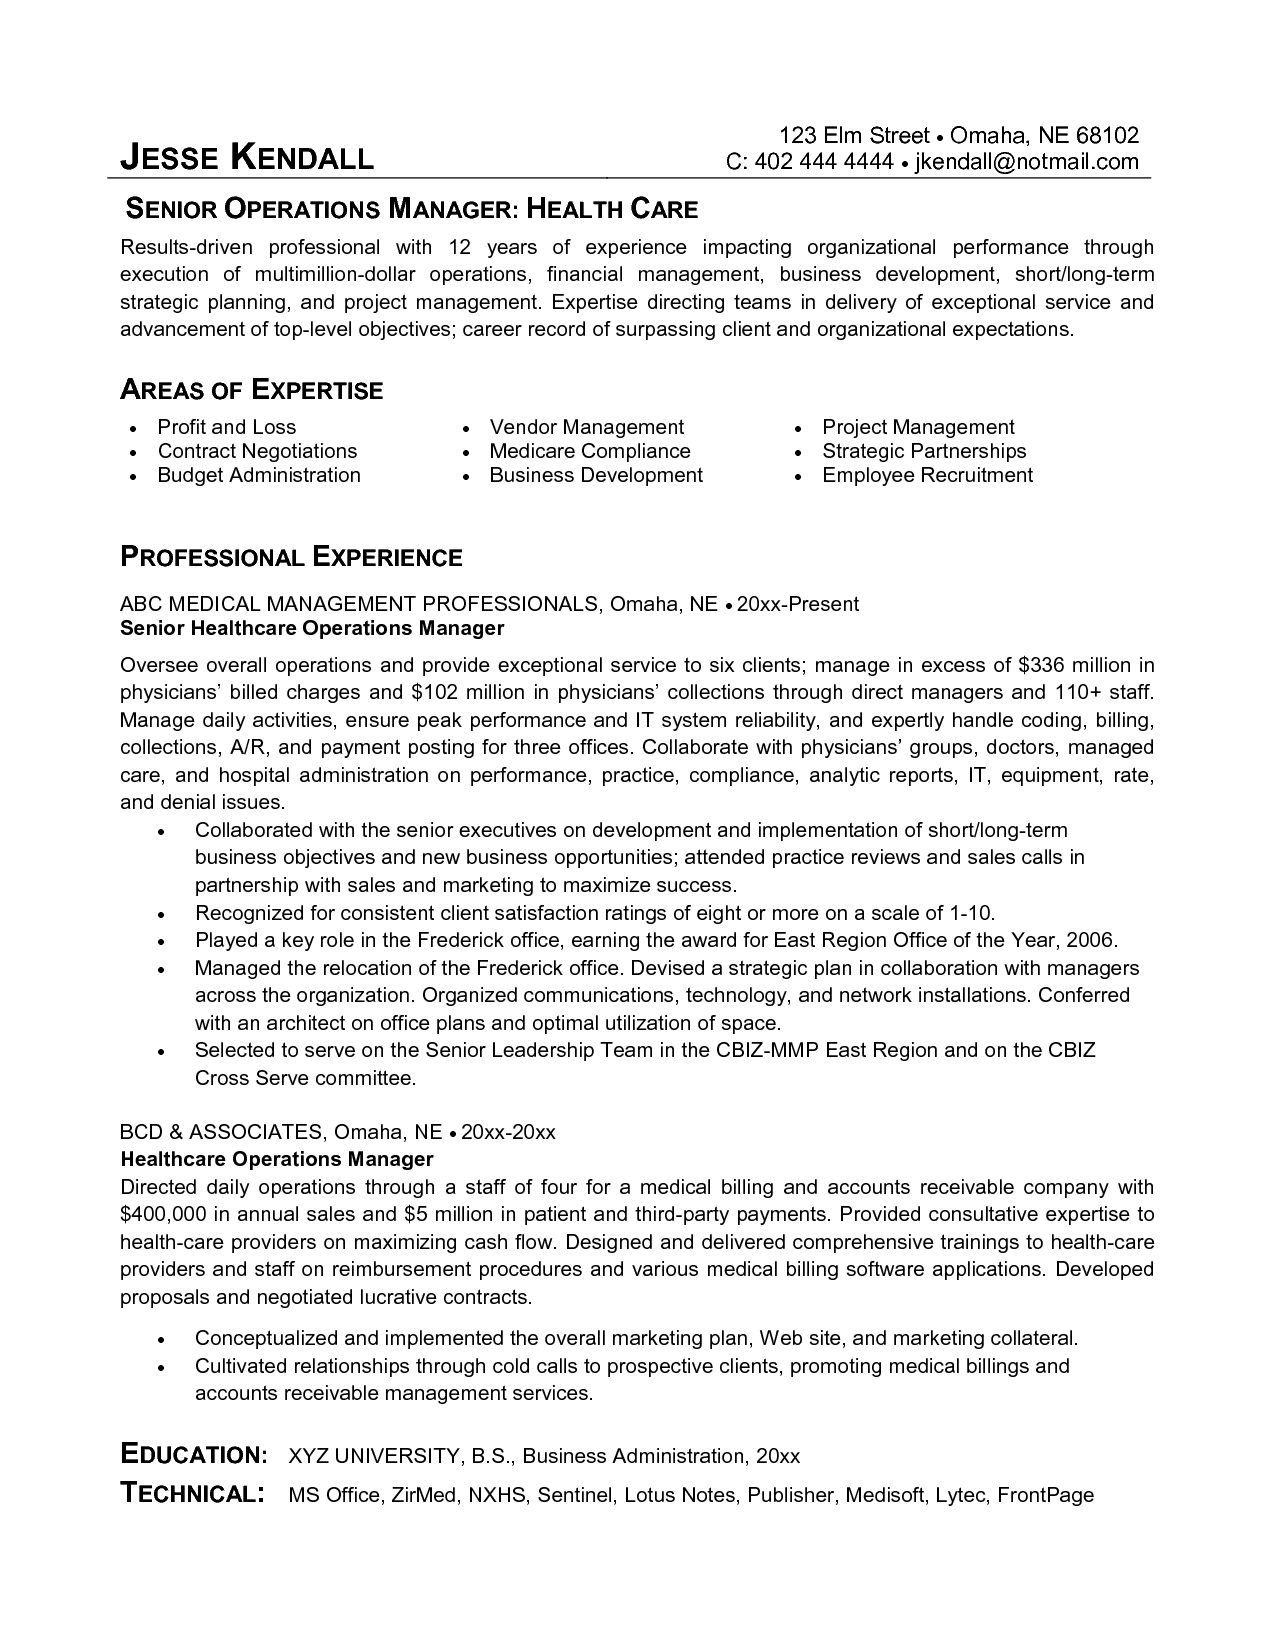 Business Management Resume Examples Healthcare Management Resume Examples Koran Sticken Co